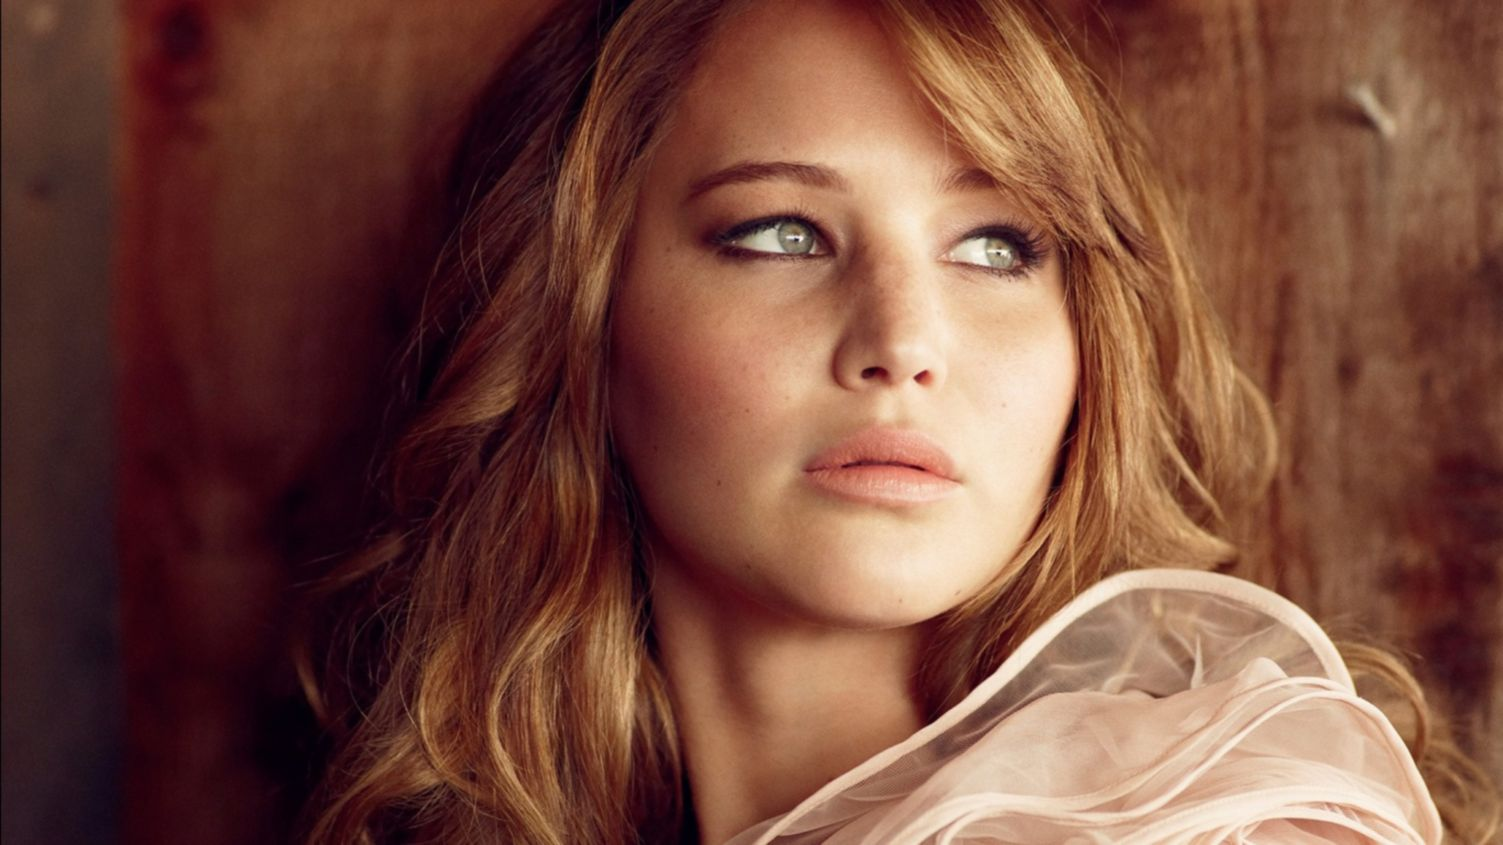 Download free HD Jennifer Lawrence Sweet 1366×768 Wallpaper, image